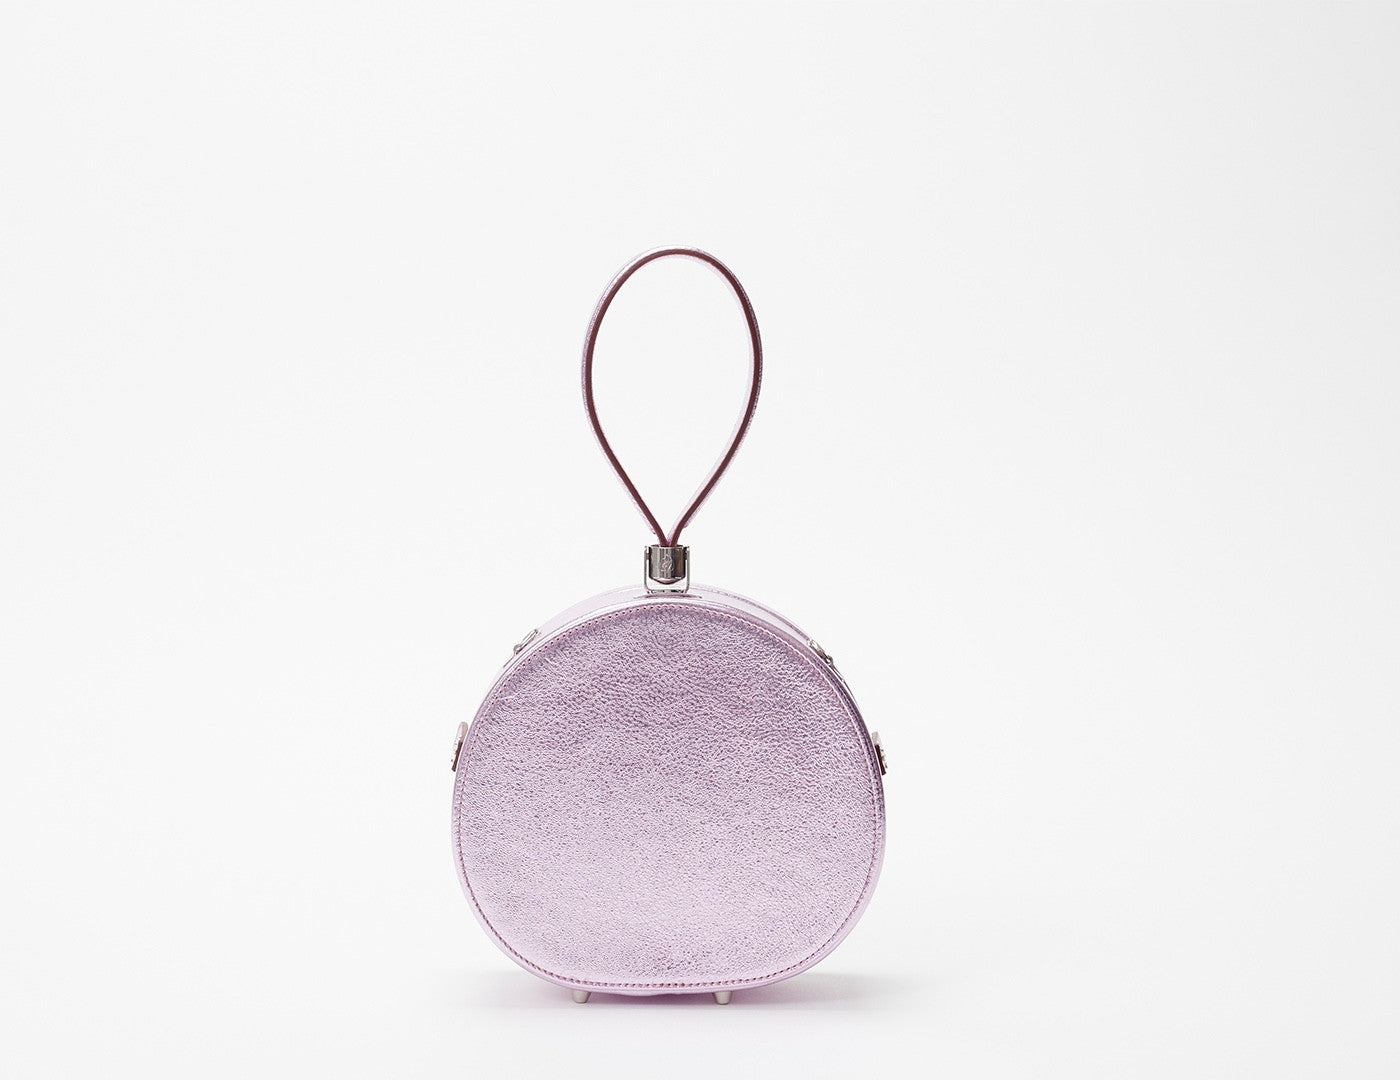 Mini Poppy Round Leather Bag, Lilac Metallic